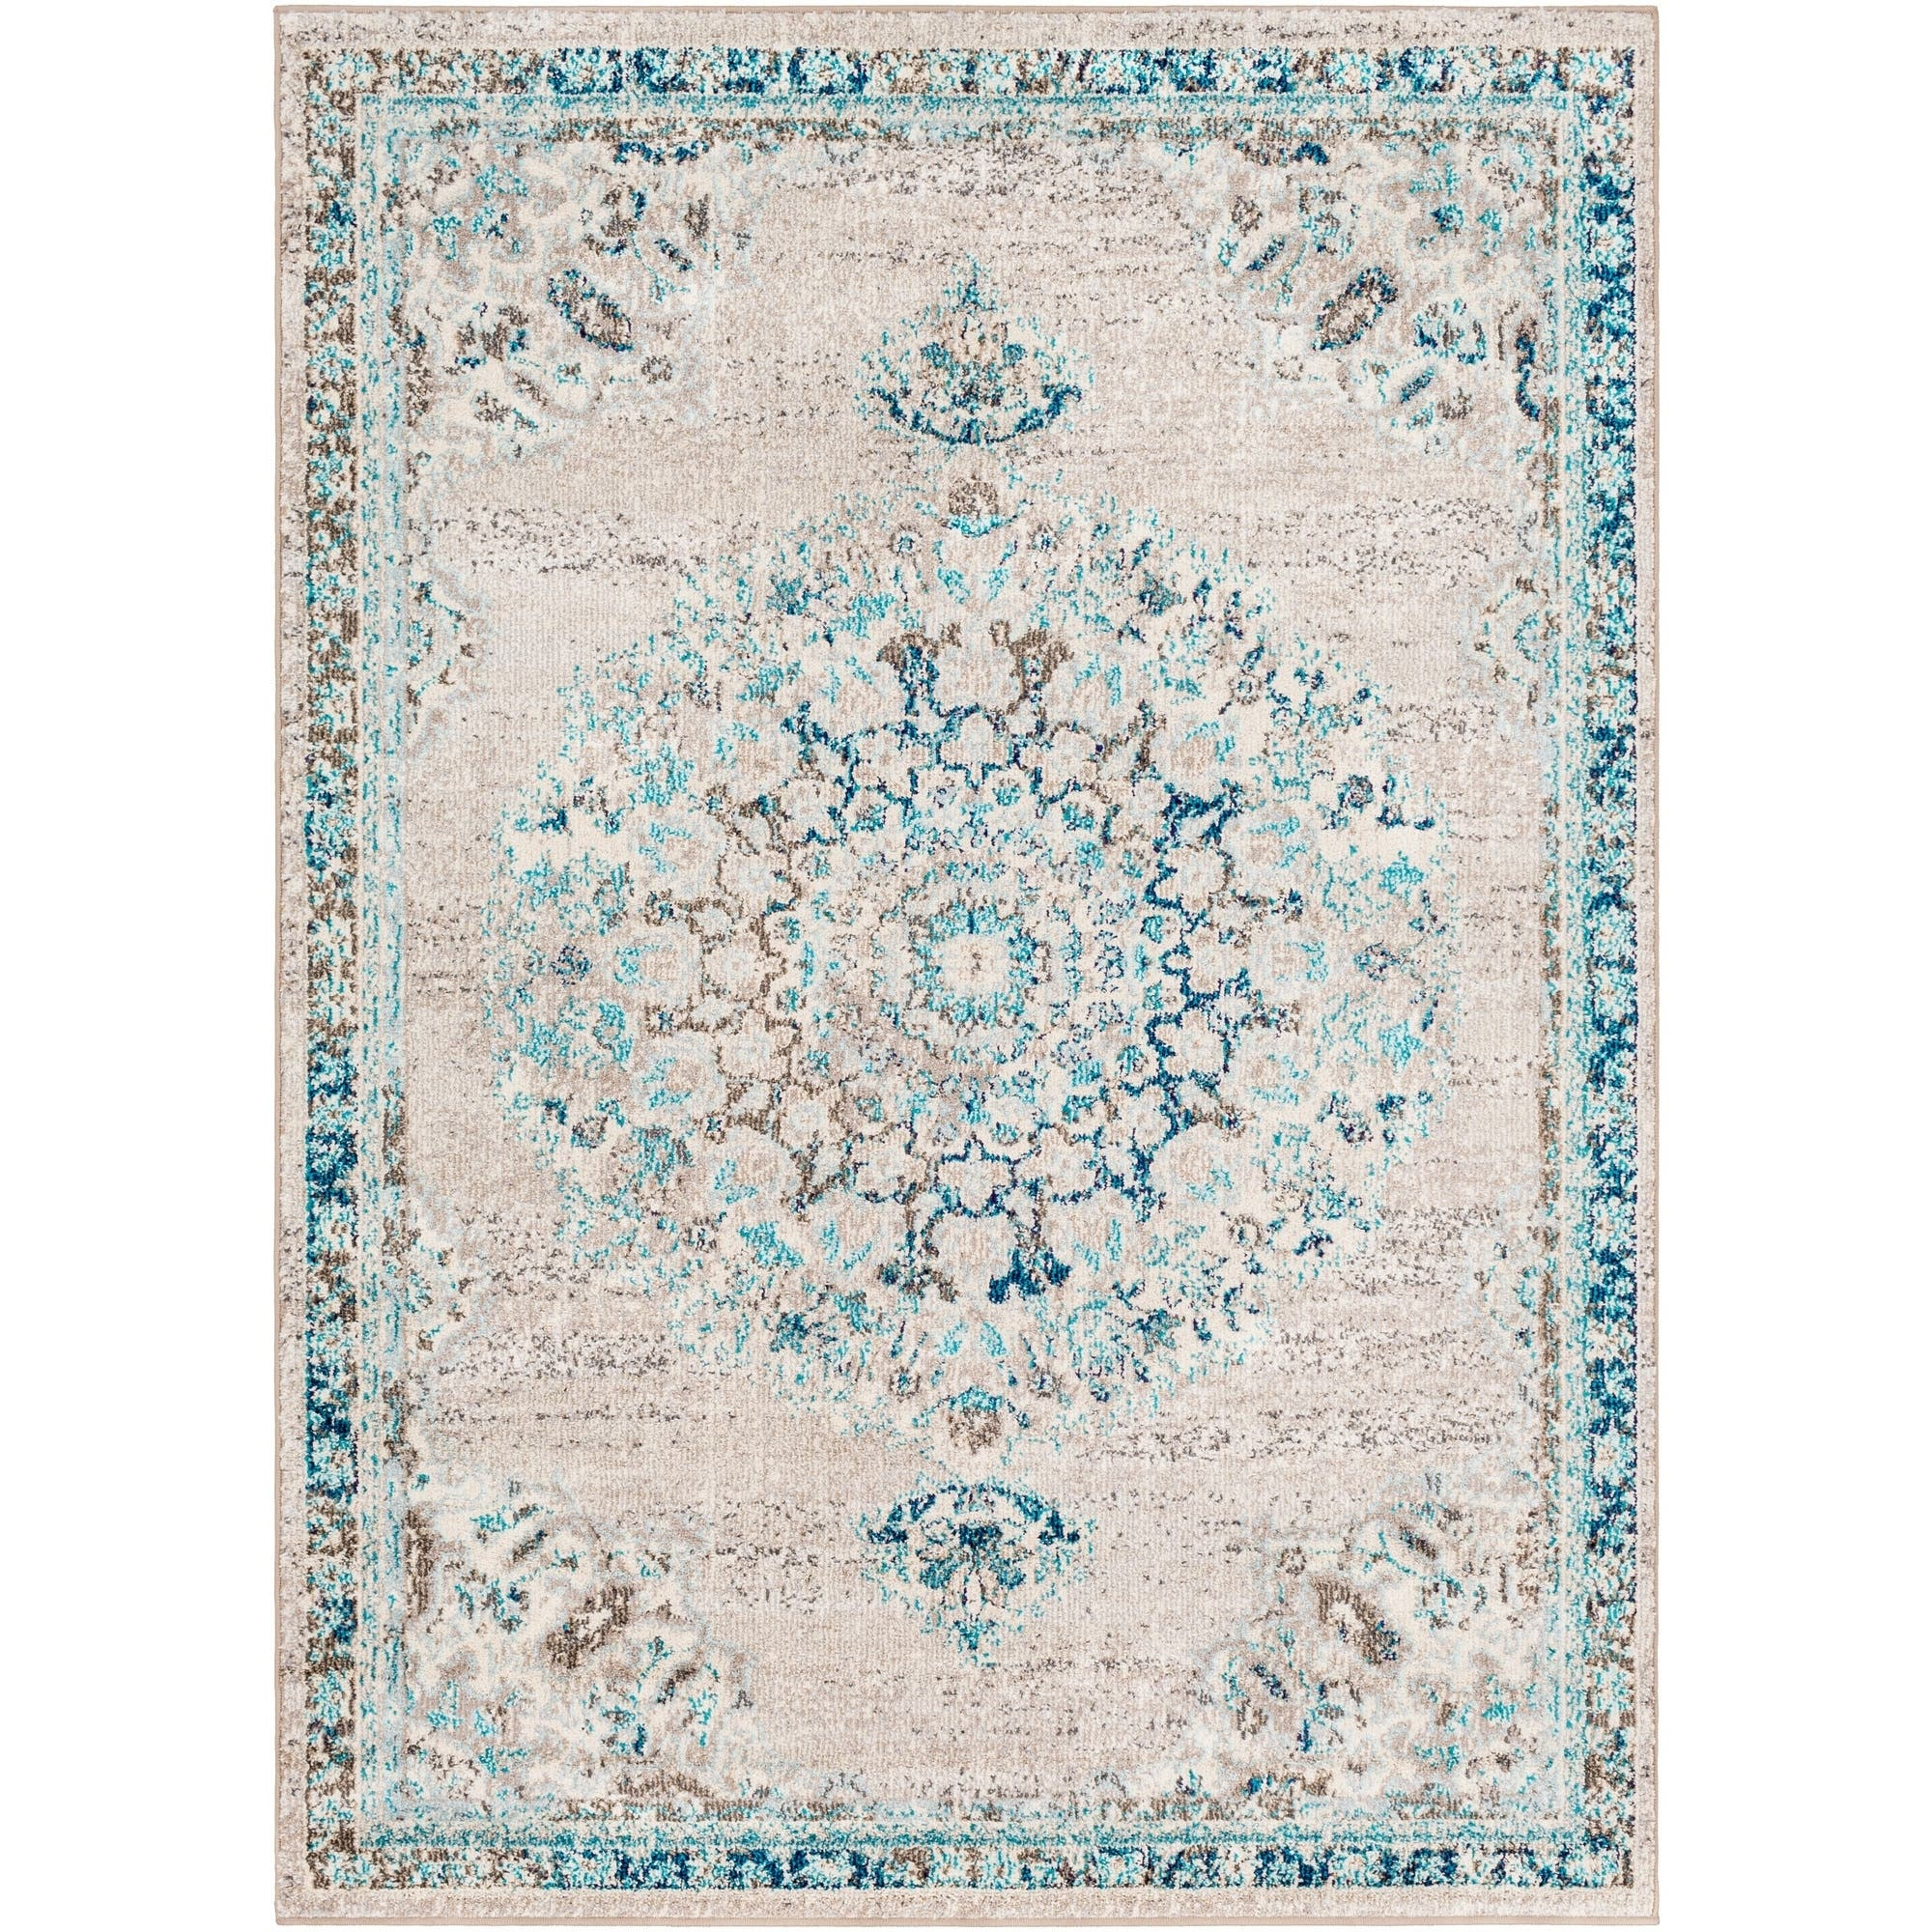 Buy Area Rugs Online At Overstock Com Our Best Rugs Deals